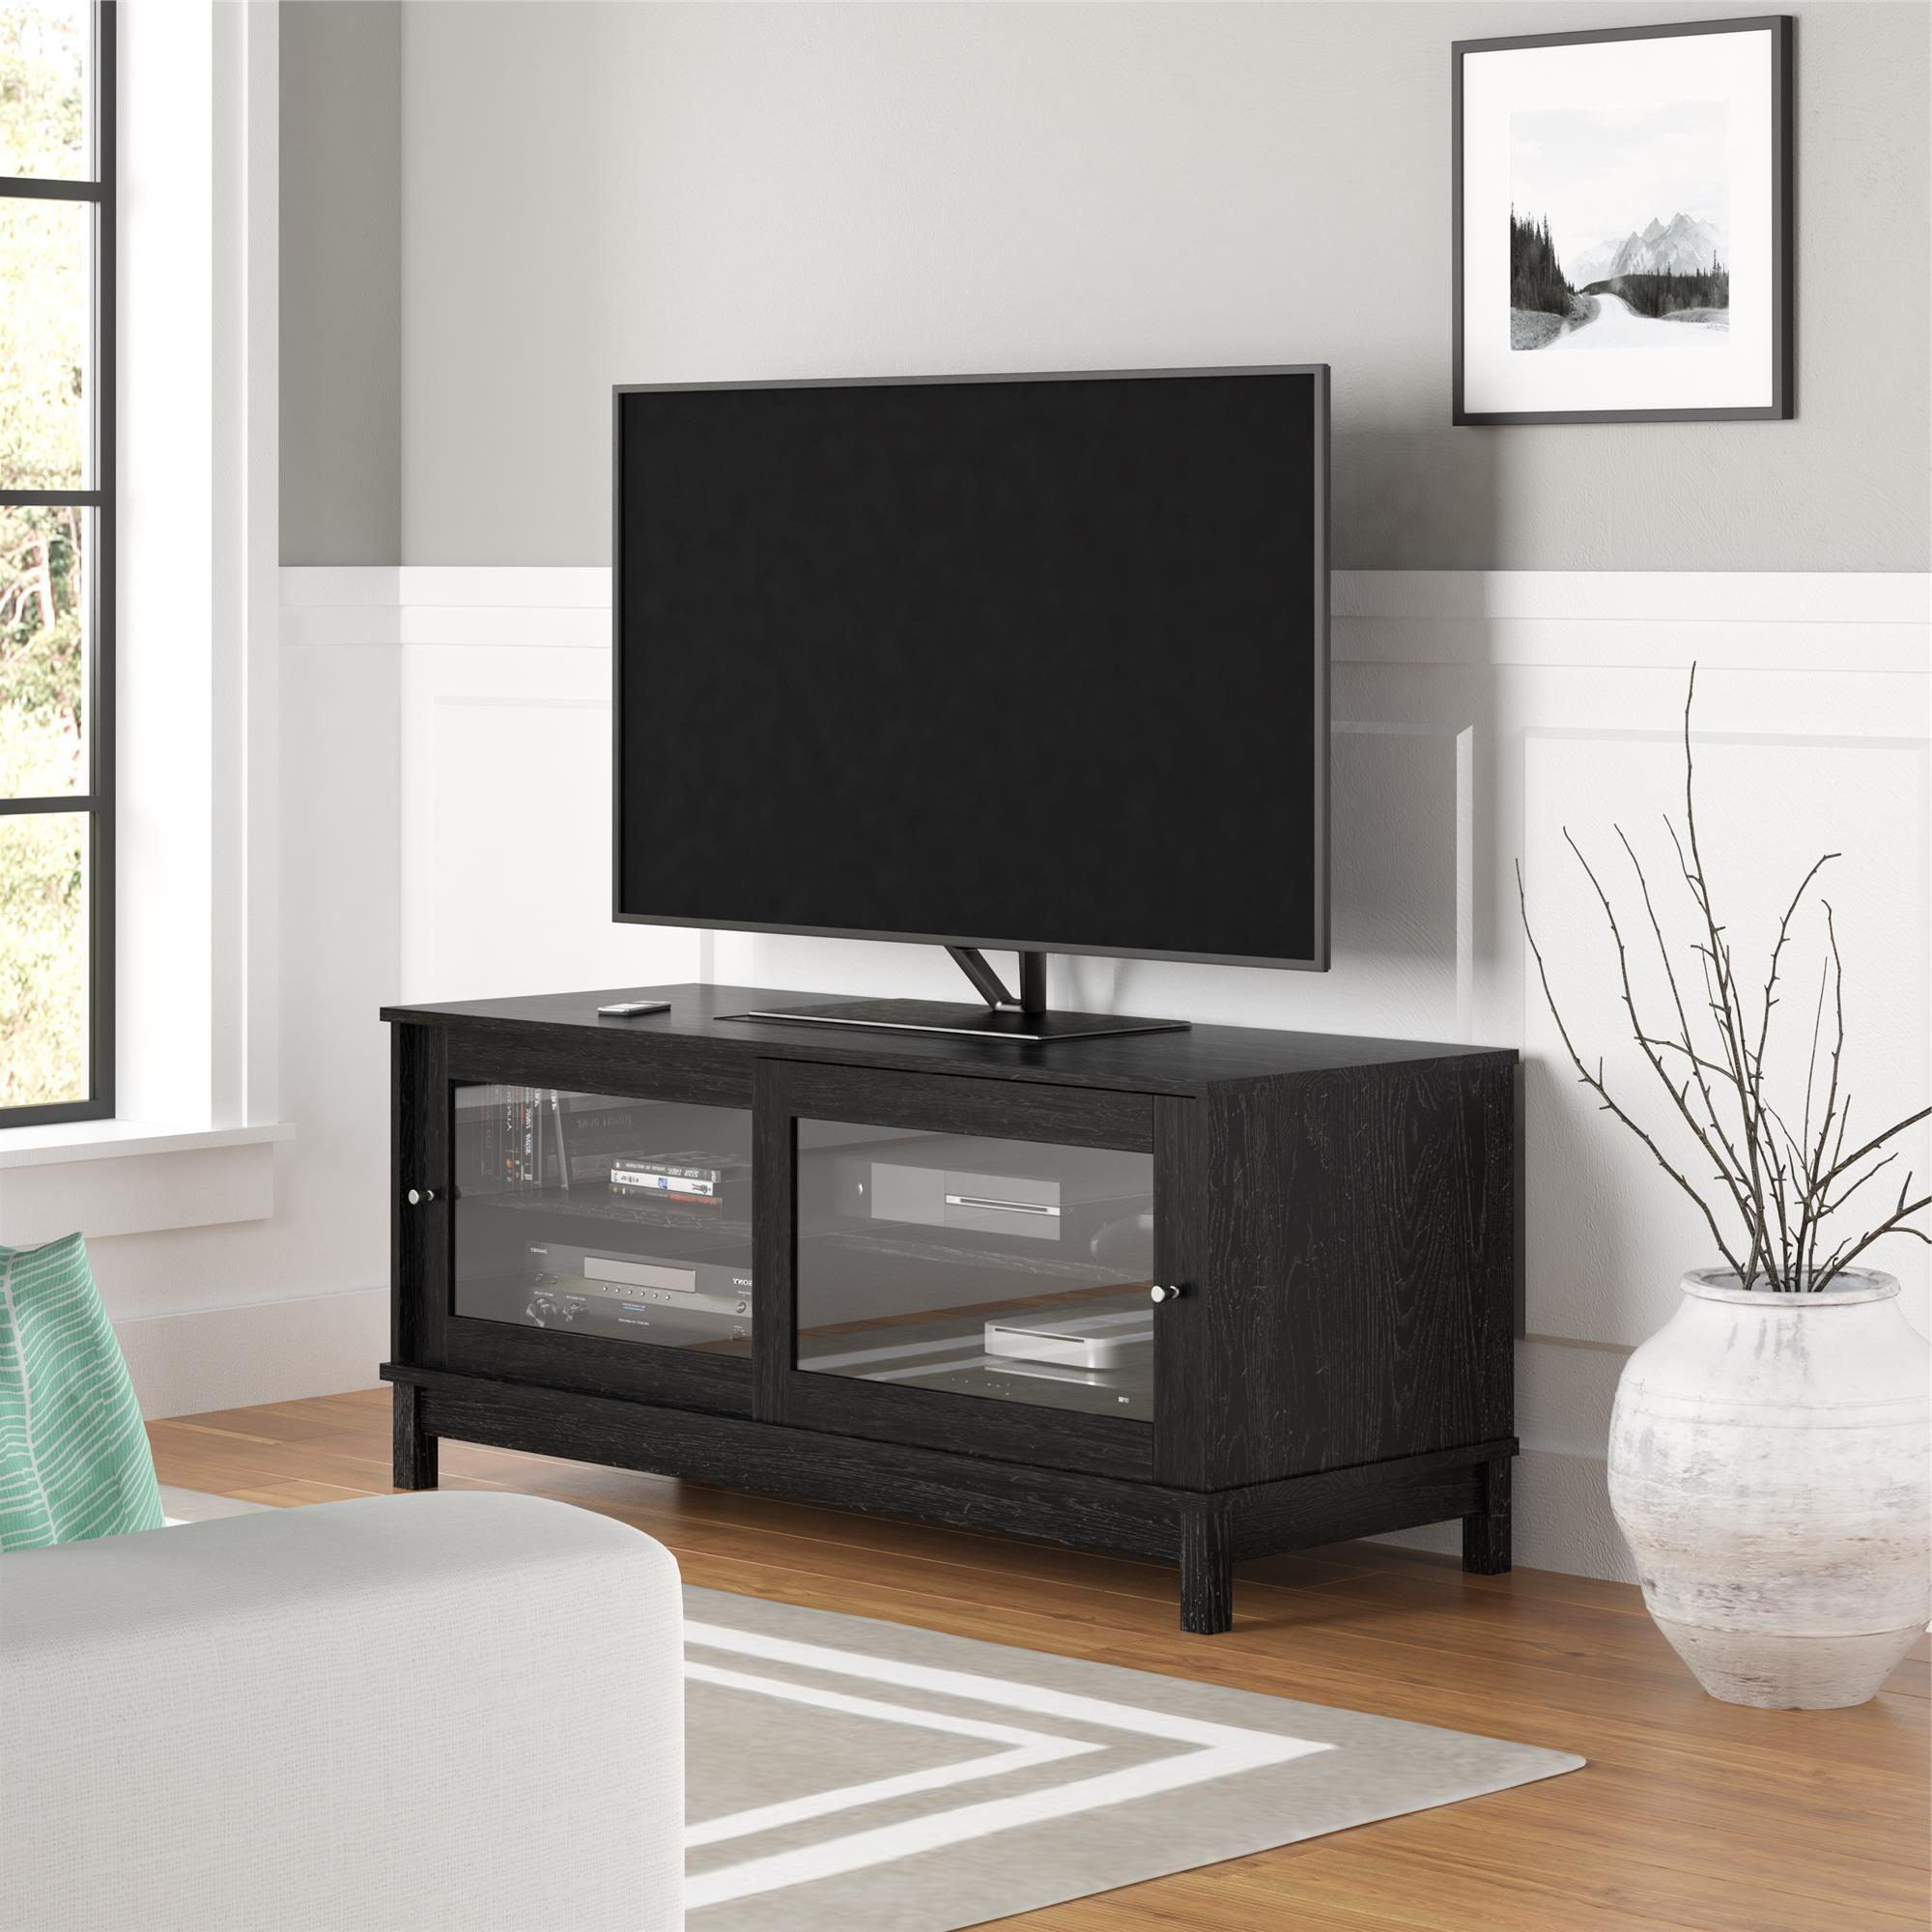 """Twila Tv Stands For Tvs Up To 55"""" Intended For Trendy Mainstays Tv Stand For Tvs Up To 55"""", Multiple Finishes (View 5 of 25)"""